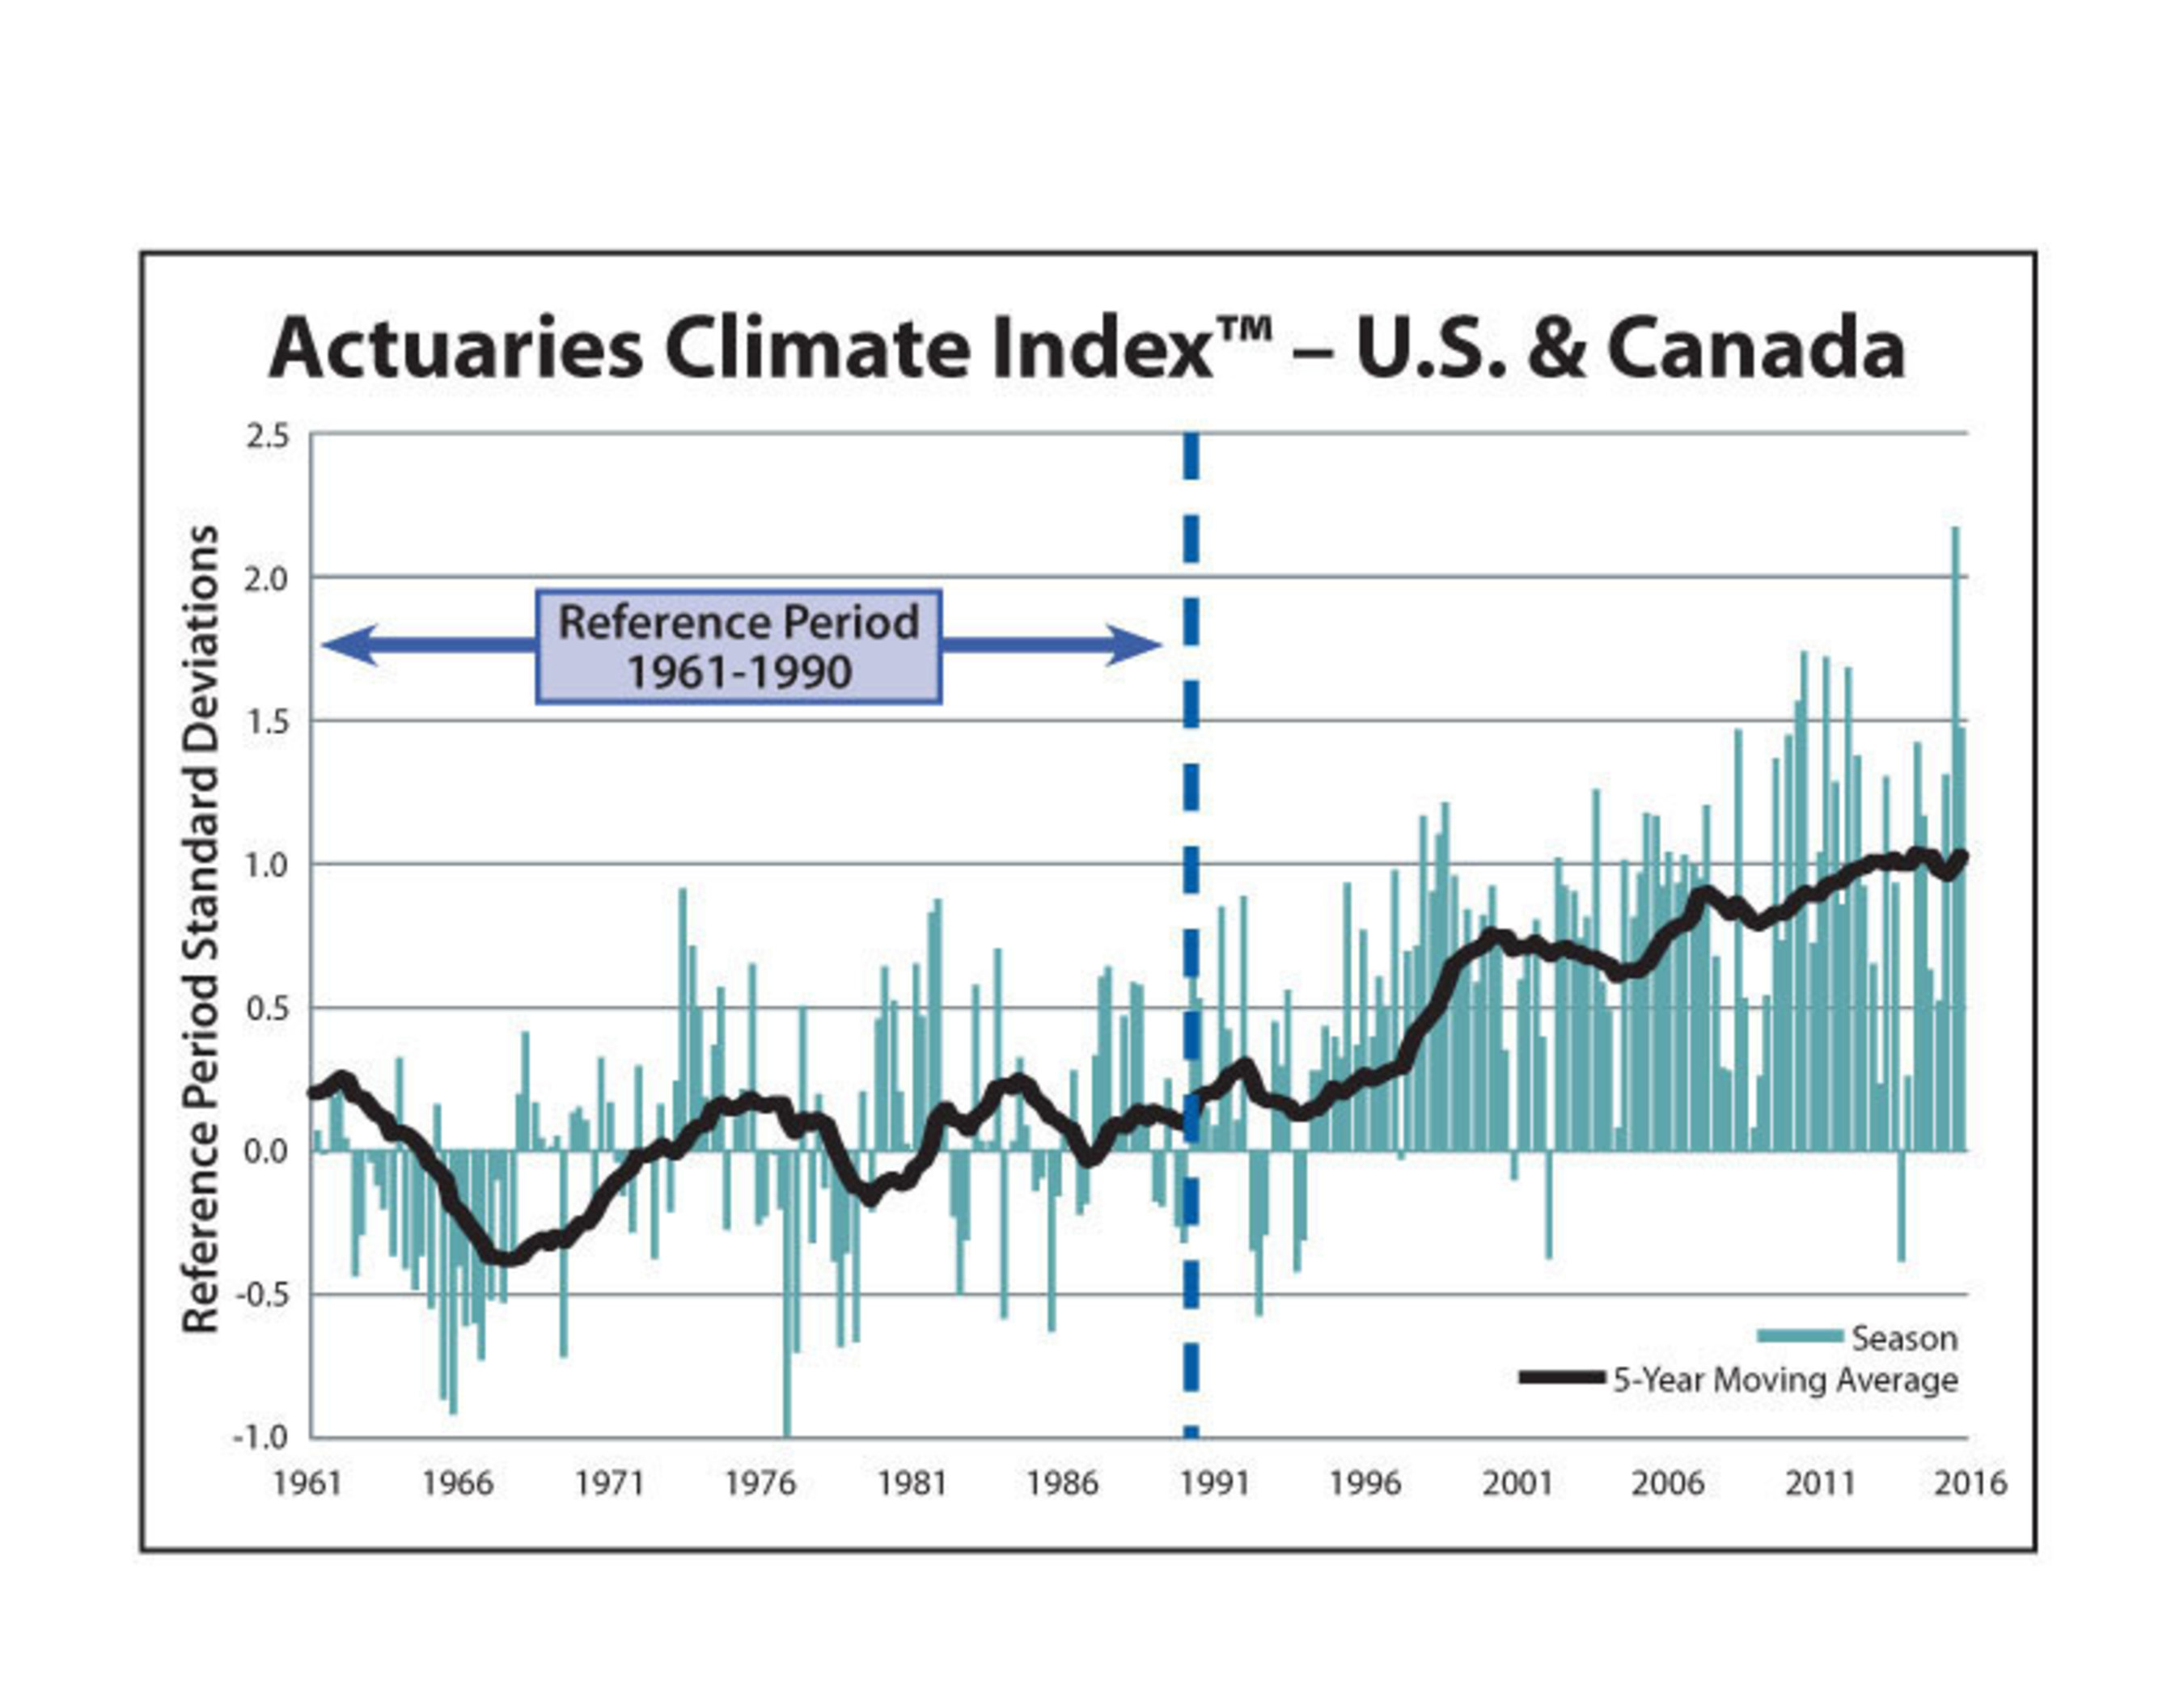 Values from the new Actuaries Climate Index(TM) show an increased impact of extreme weather events in the U.S. and Canada.